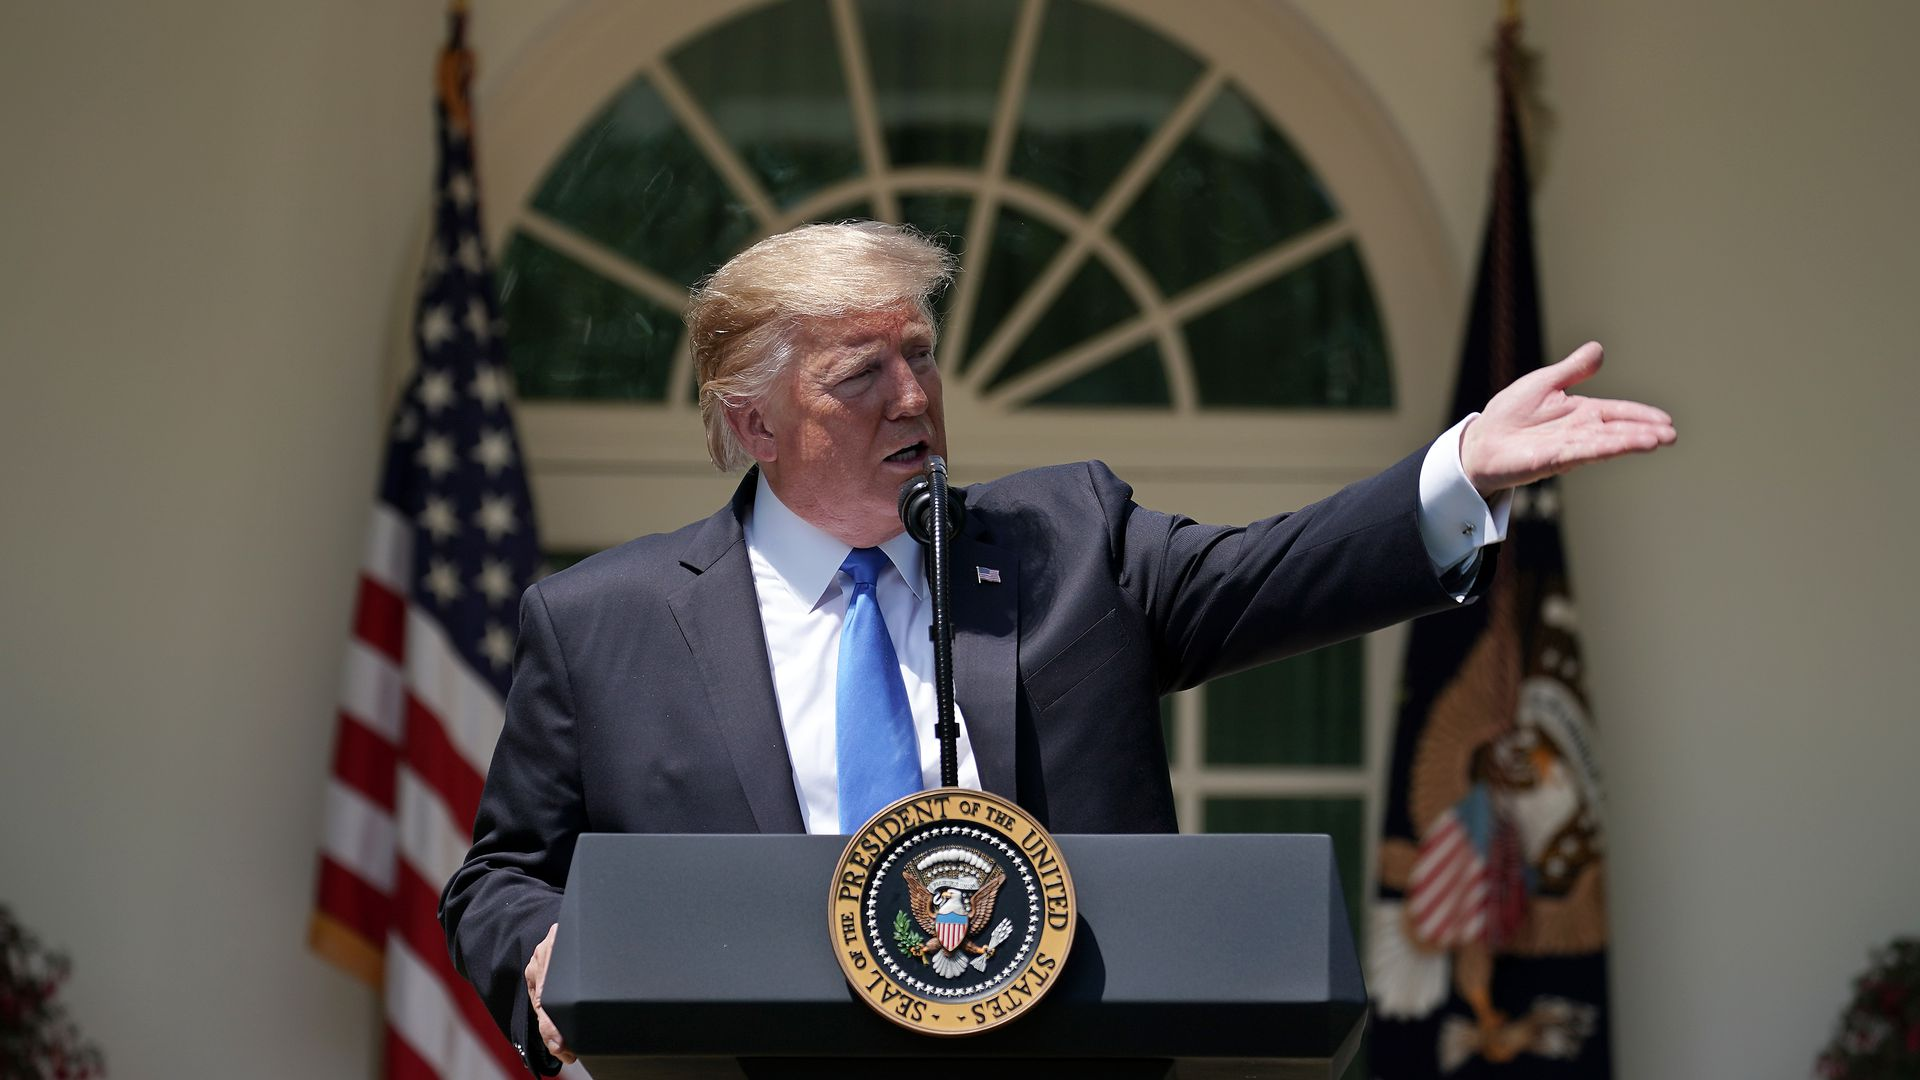 In this image, Trump gestures to the right while standing behind a podium.